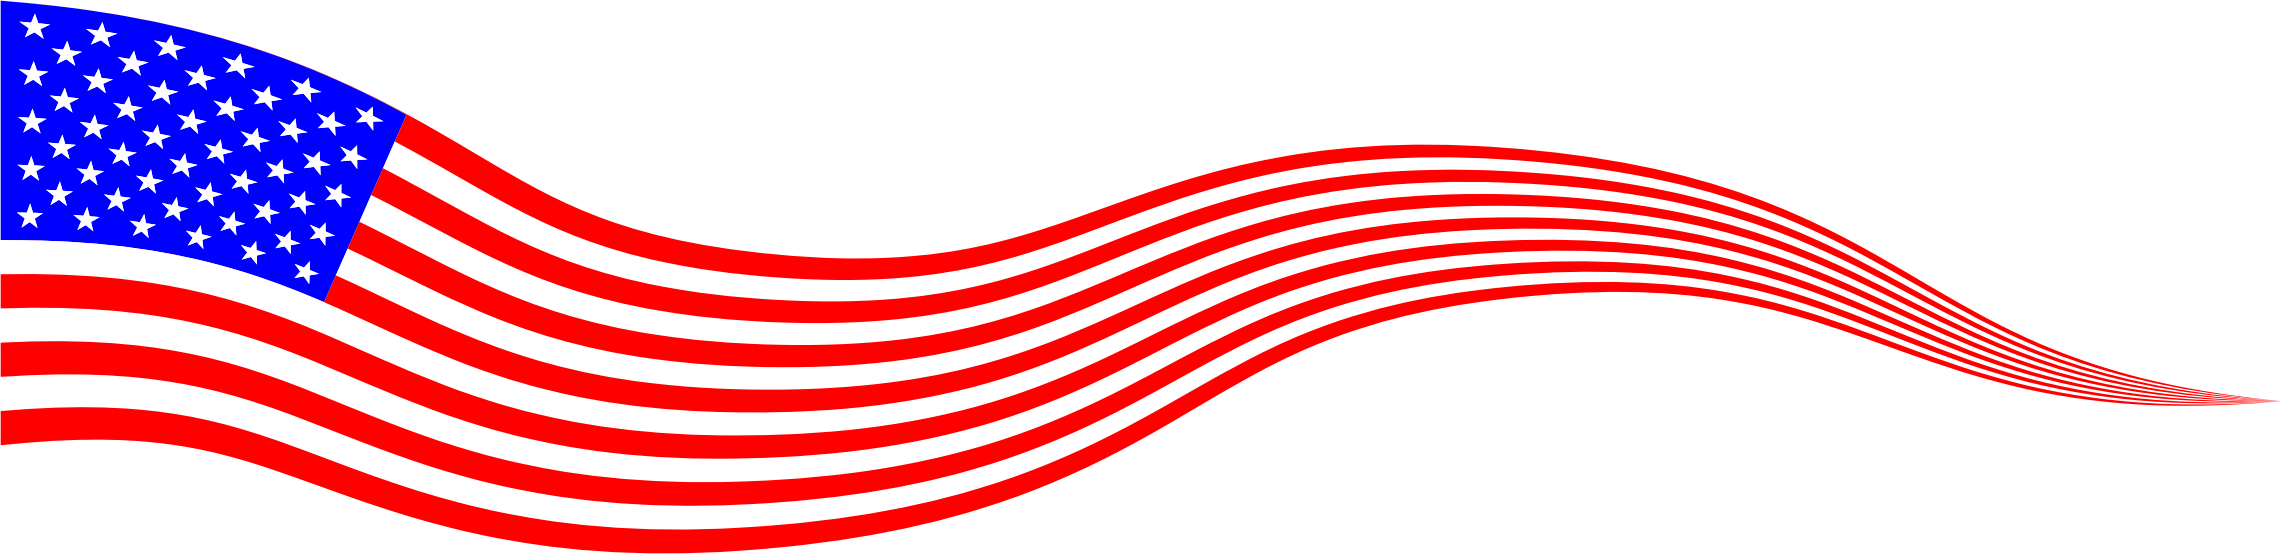 2281x554 Wavy Usa Flag Banner By @gdj, Wavy Usa Flag Banner,